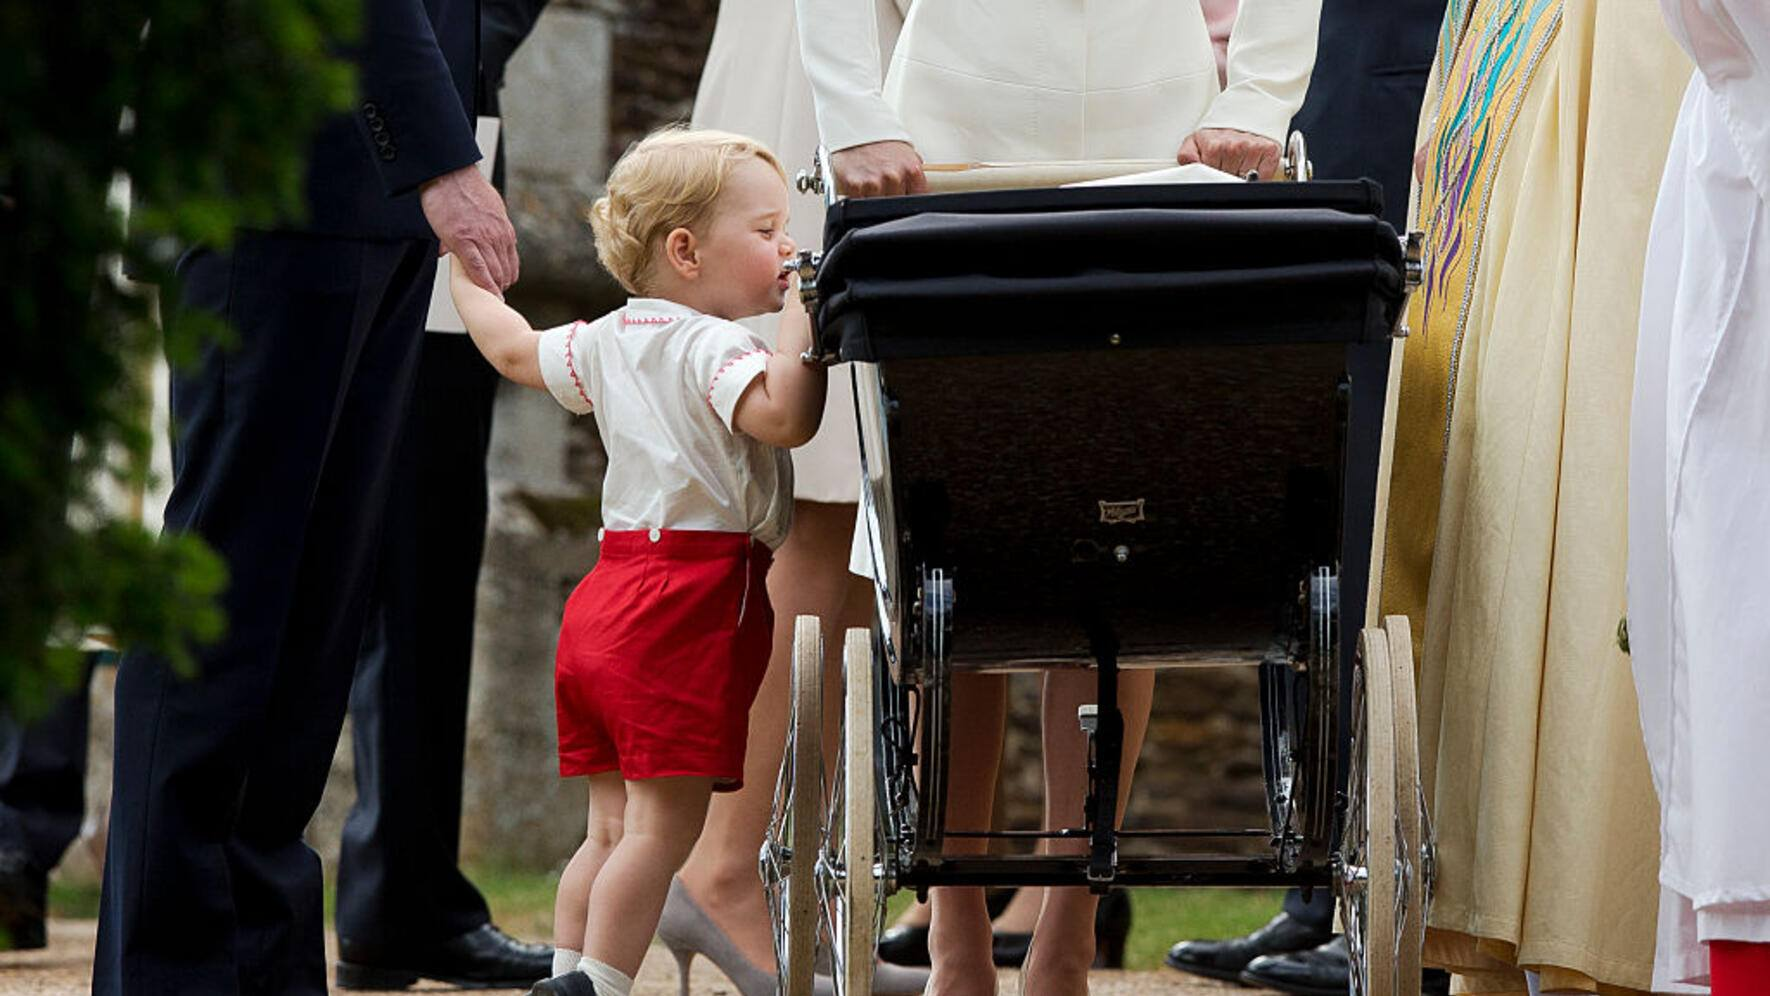 LONDON, UNITED KINGDOM - OCTOBER 04:  Prince William Giggling With His Hand Over His Mouth As He And His Baby Brother, Prince Harry, Pretend To Play The Piano During A Private Photo Session At Their Home, Kensington Palace.  (Photo by Tim Graham/Getty Images)